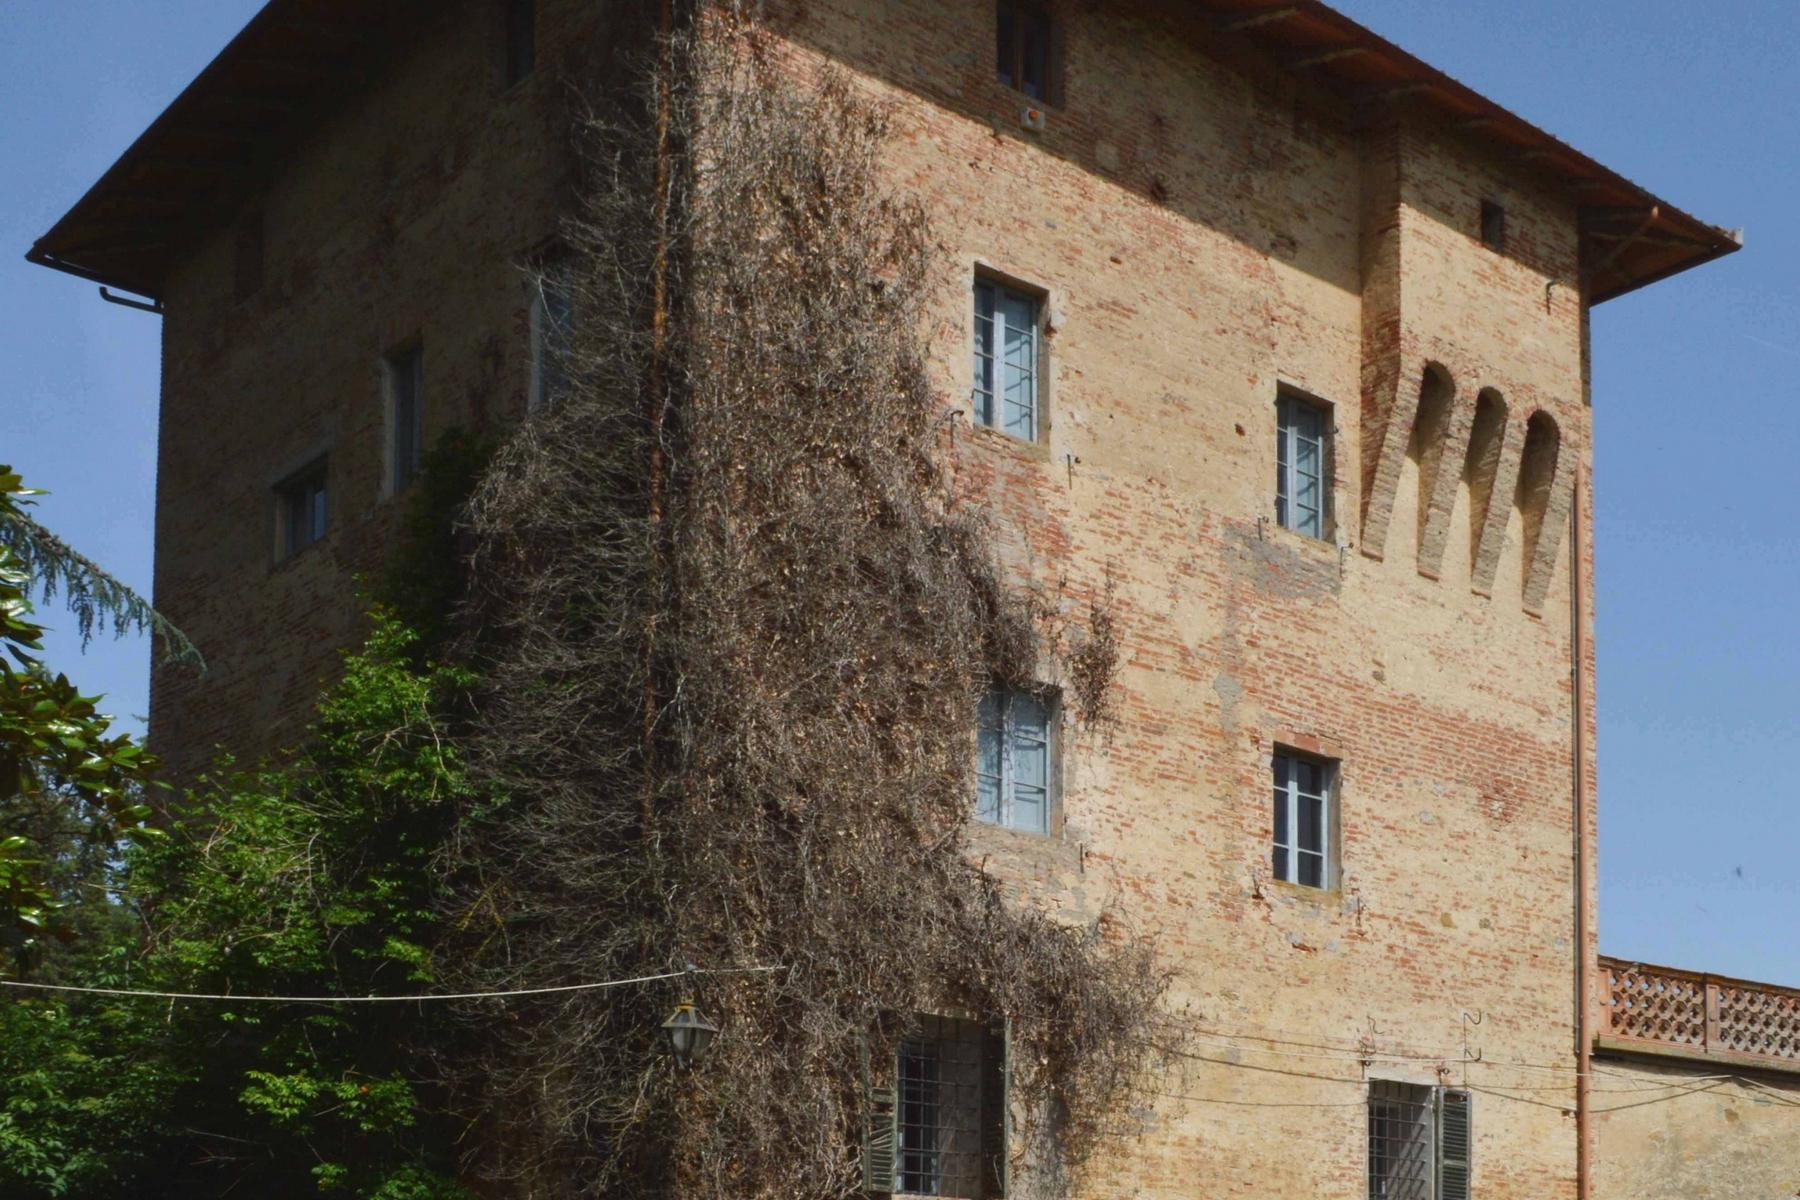 Majestic 15th century mill to be restored - 7